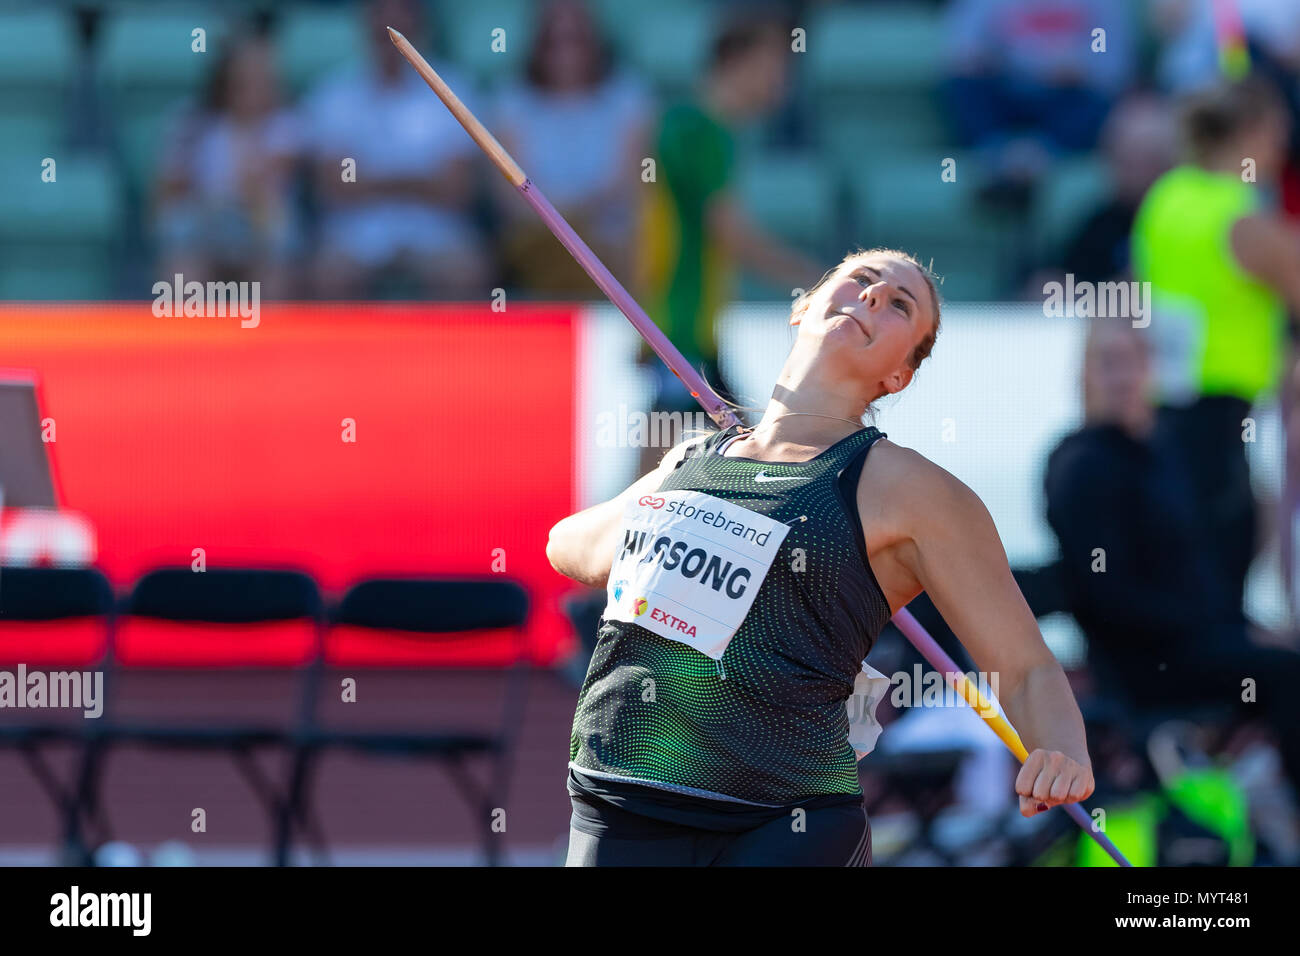 Oslo, Norway. 7th June 2018, Bislett stadium, Oslo, Norway; Bislett Games, Diamond League Athletics meeting; Christin Hussong of Germany competes in the ladies javelin during the IAAF Diamond League held at the Bislett Stadium Credit: Action Plus Sports Images/Alamy Live News - Stock Image